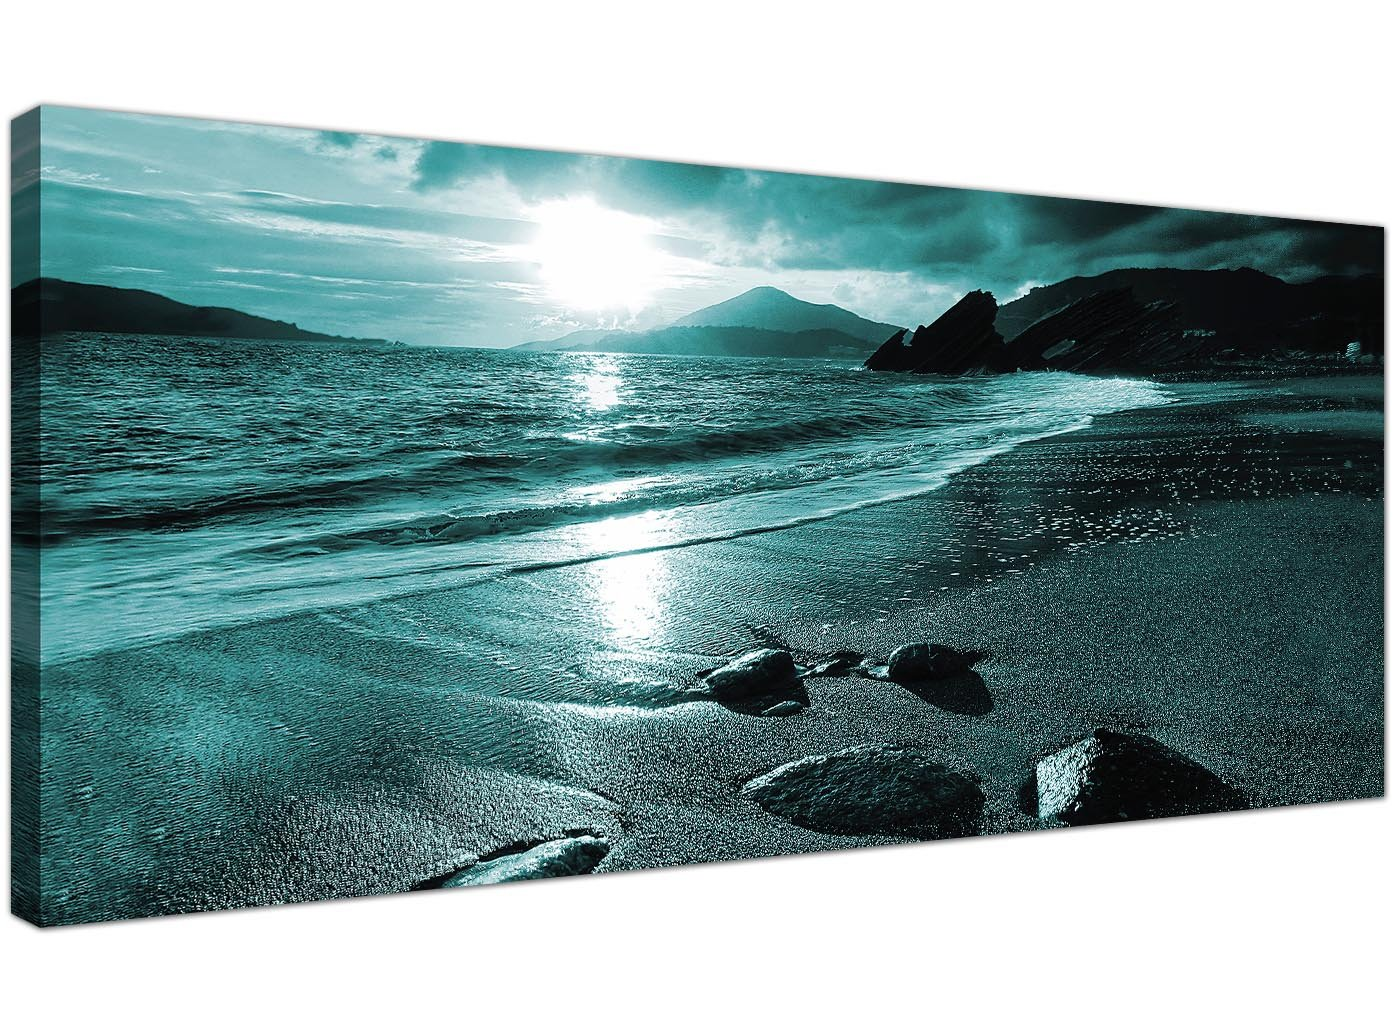 Modern Teal Canvas Pictures Of A Beach Sunset   Turquoise Sea Wall Art    1079   Wallfillers®: Amazon.co.uk: Kitchen U0026 Home